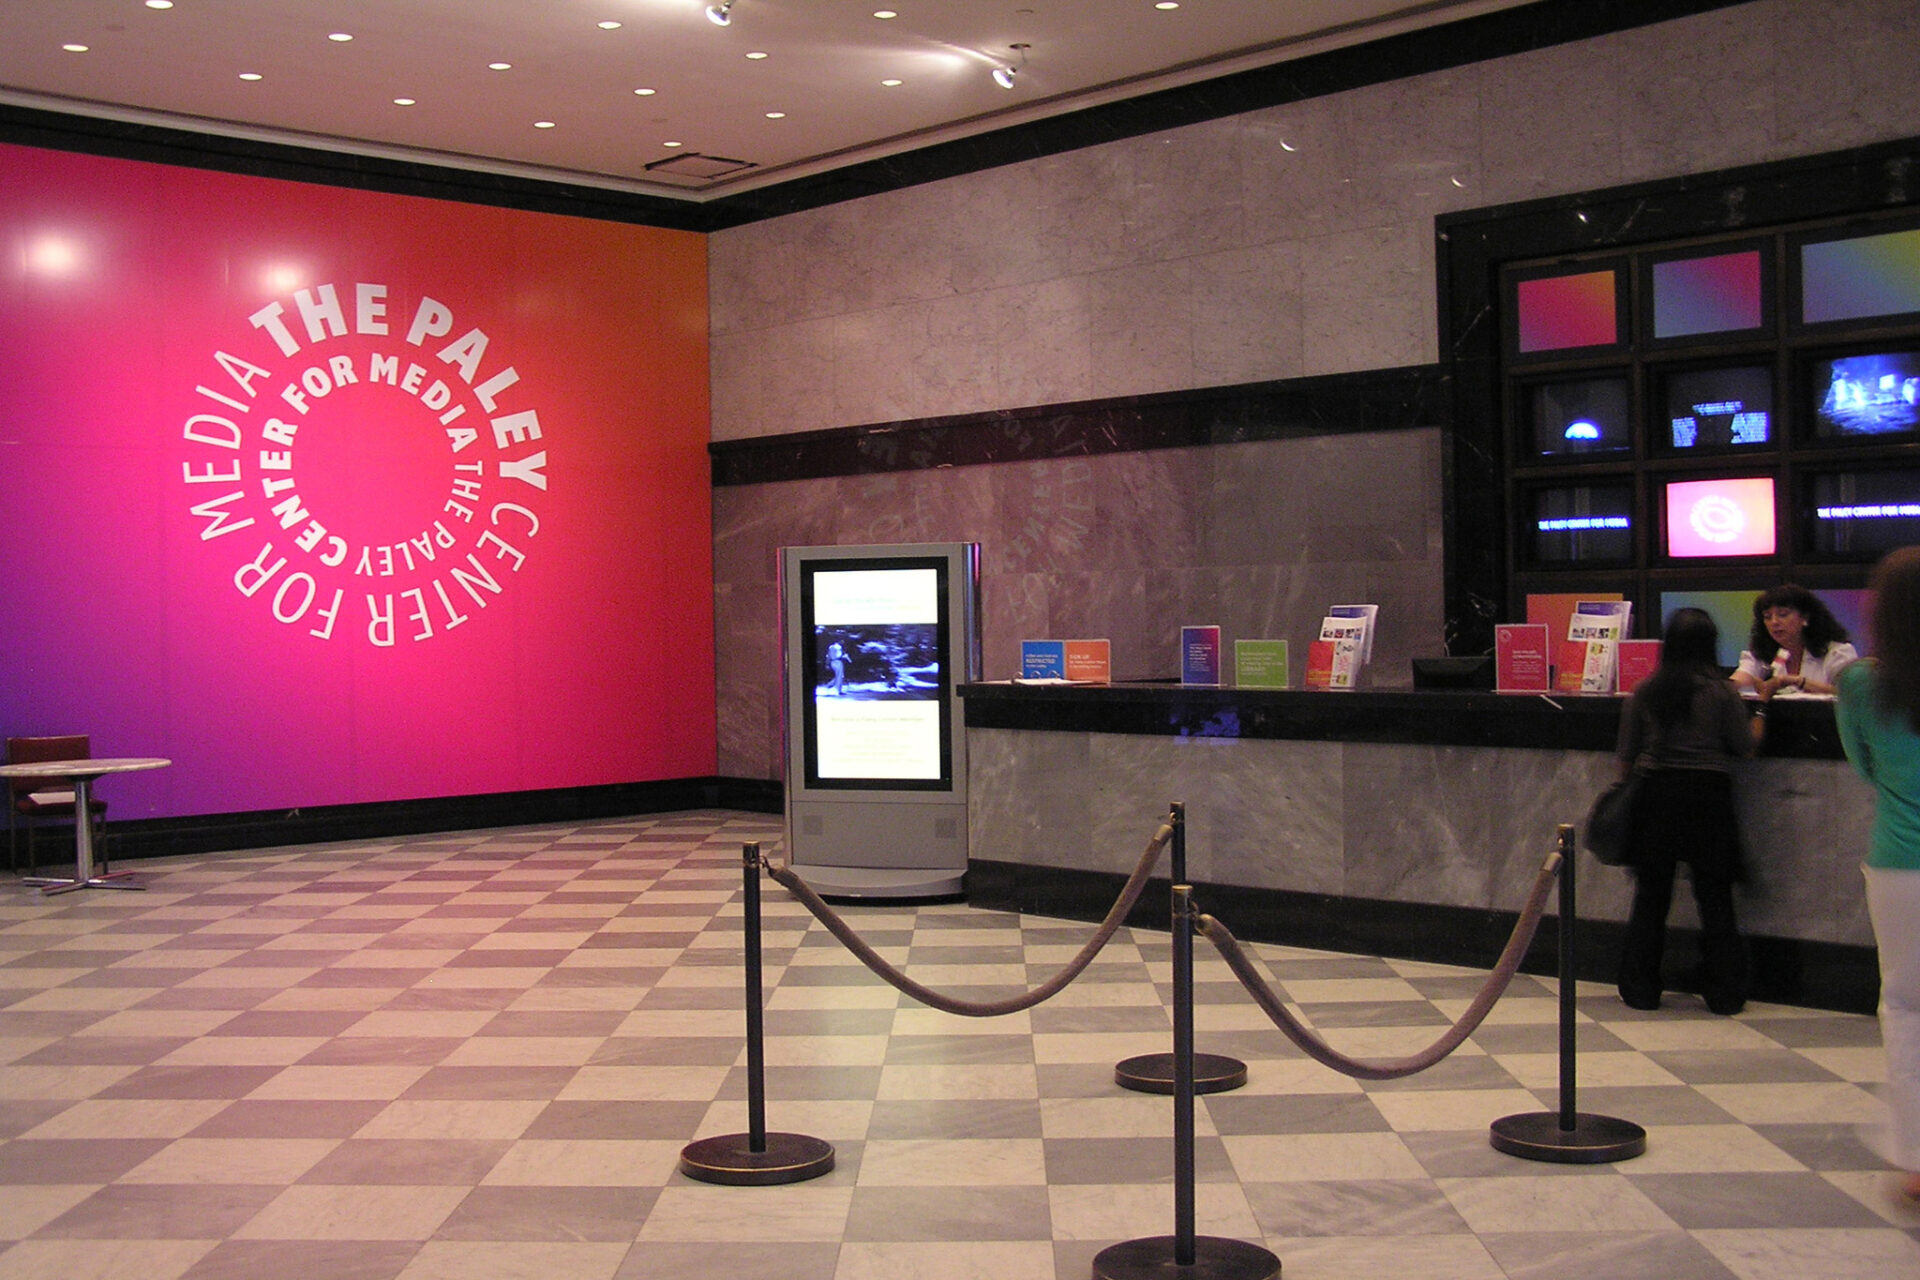 The Paley Center